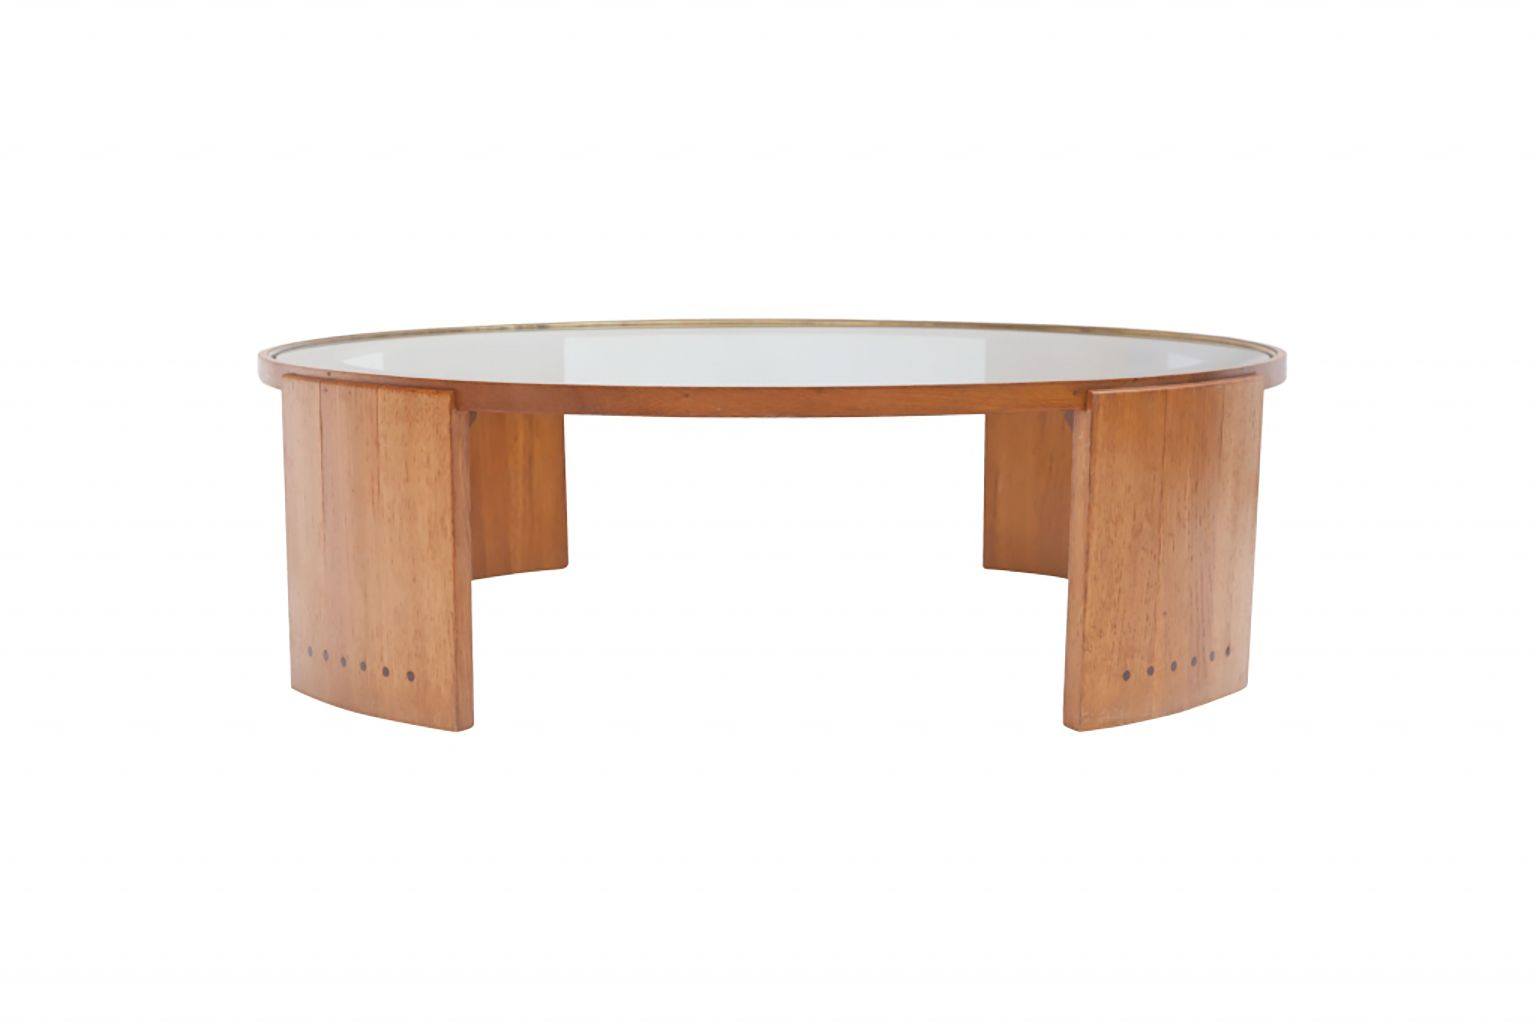 Table basse par pierre chapo 1960s en vente sur pamono for Table basse pierre